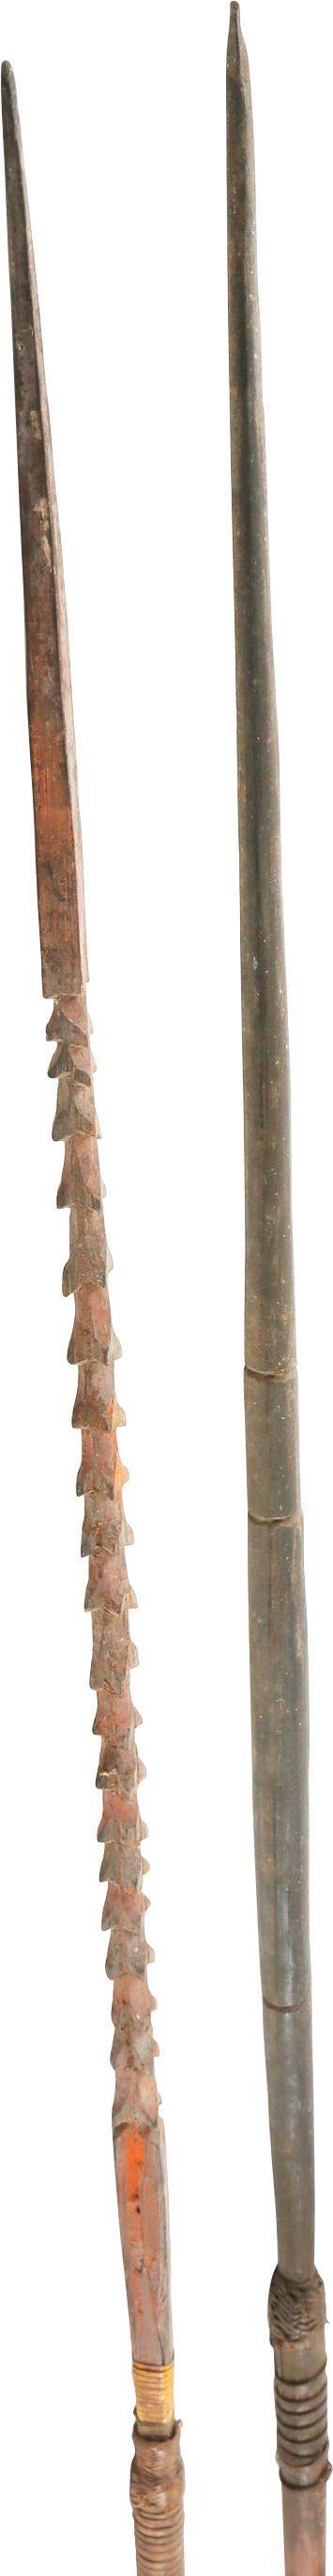 GOOD NEW GUINEA SPEAR - Fagan Arms